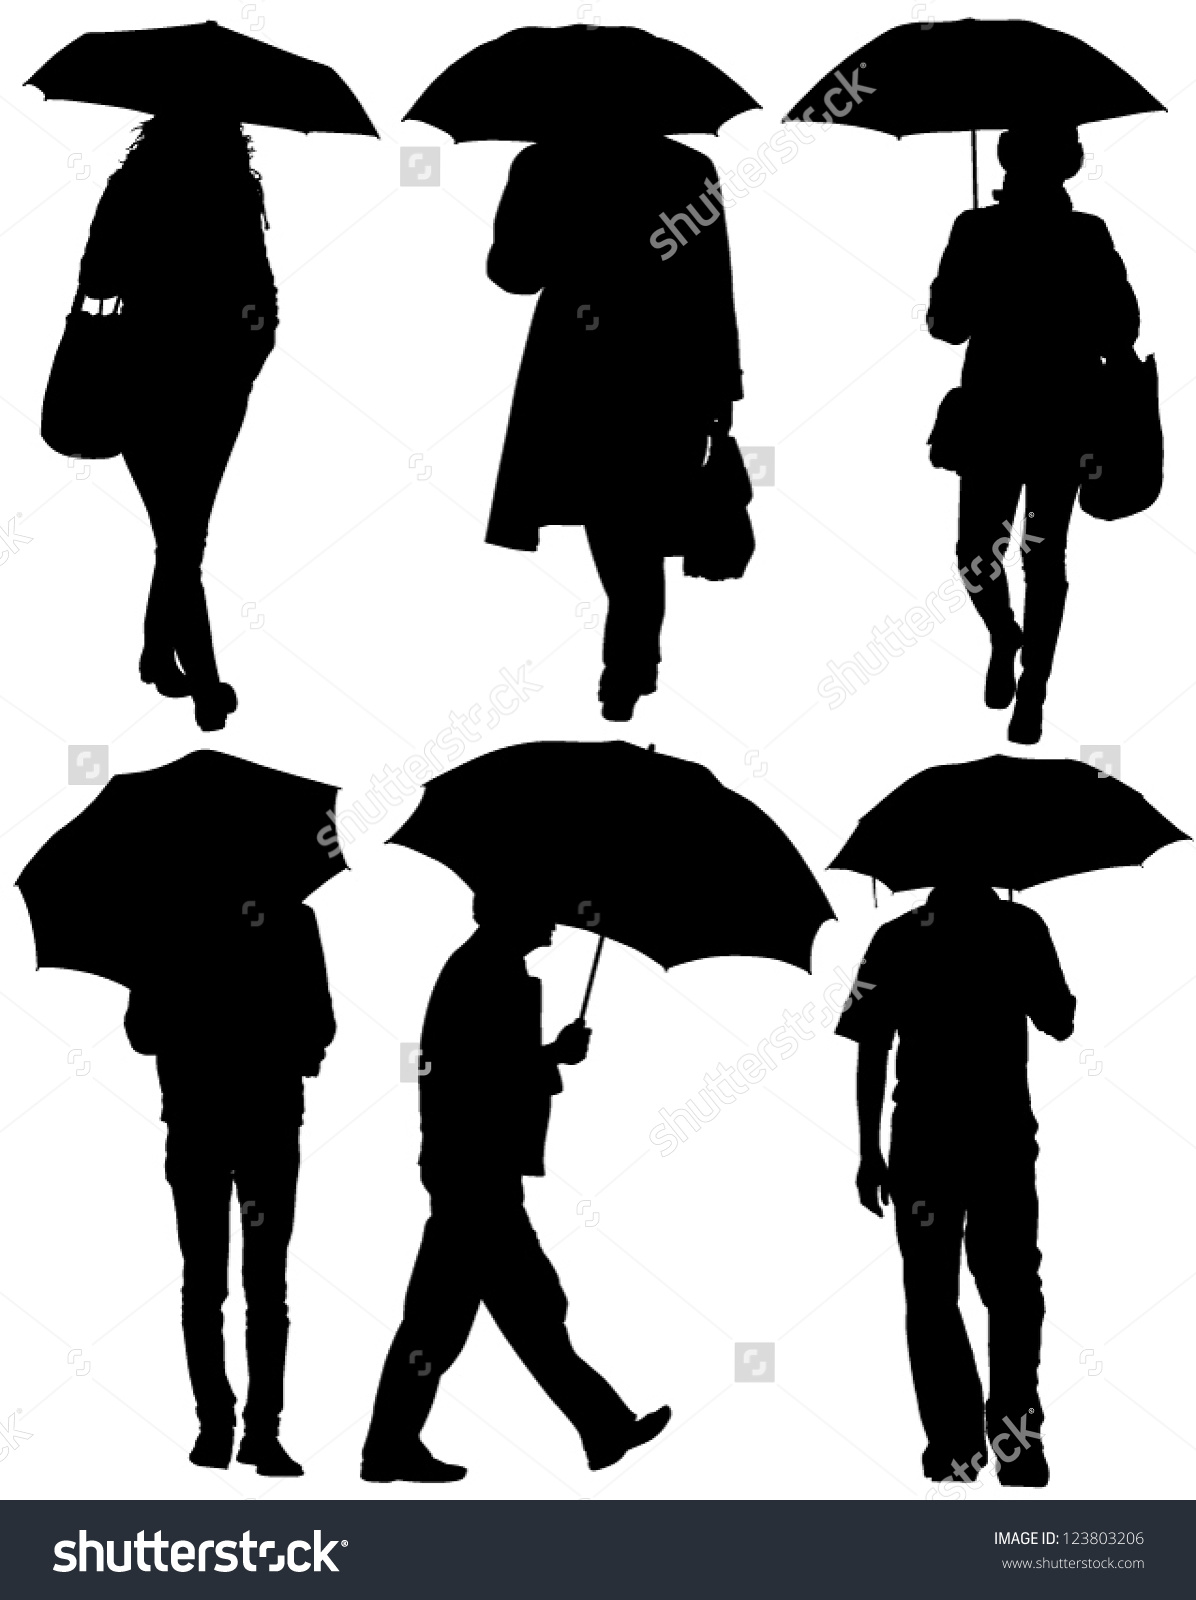 Man Woman Umbrella Silhouette On White Stock Vector 123803206.